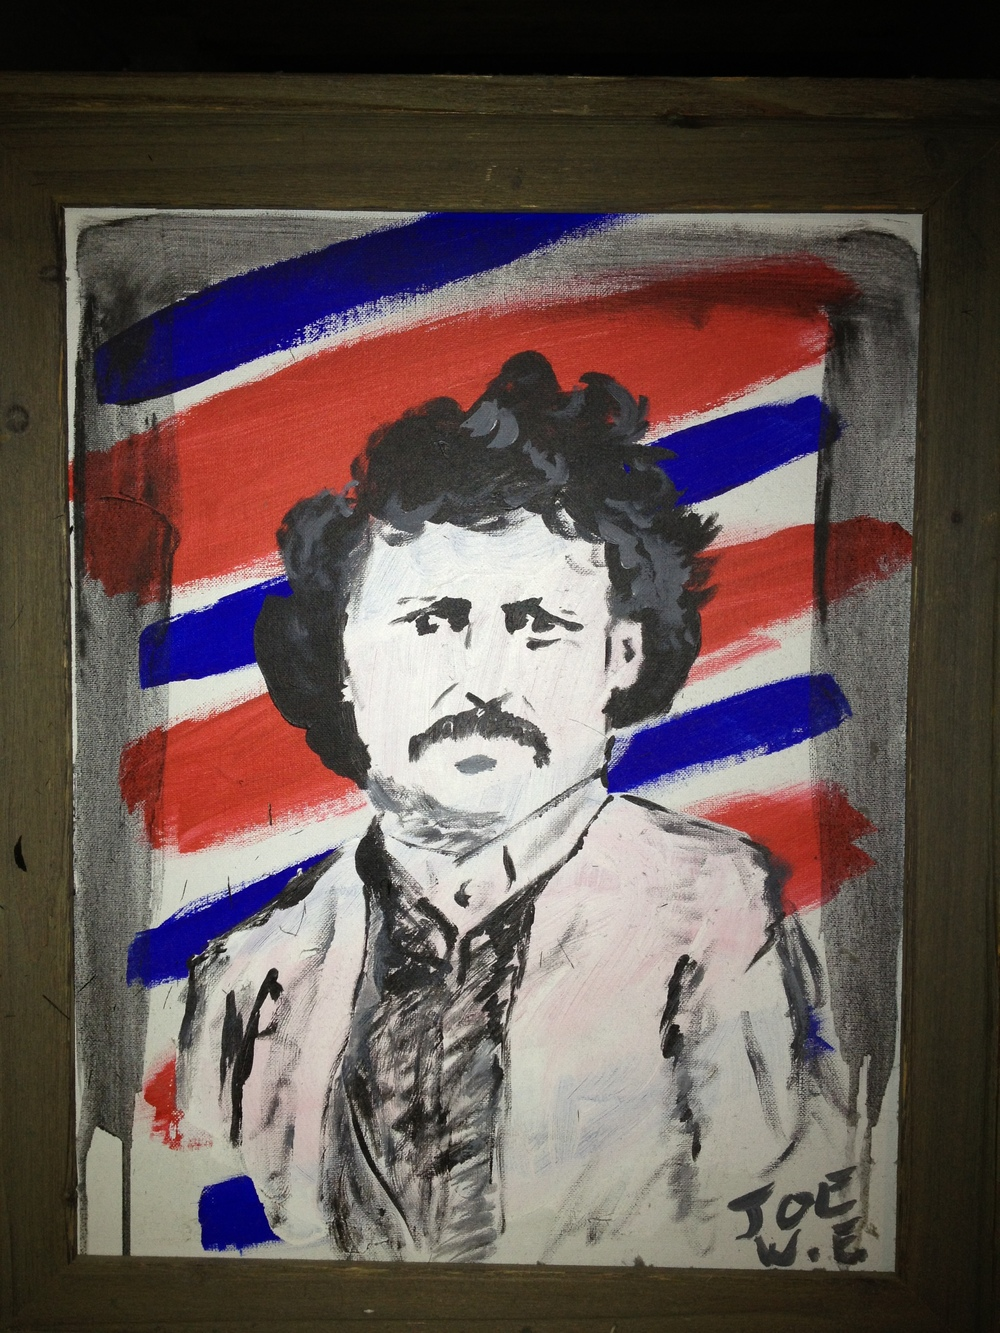 "I once directed a play called ""Booster McCrane, P.M."" by David S. Craig, about a small town lawyer who accidentally manages to get himself elected Prime Minister of Canada. In one scene, Booster's best friend and adviser, Chief Joe White Eagle is sitting in the P.M.'s office painting a portrait of Louis Riel. On the morning of dress rehearsal day I realized that we didn't actually have the portrait yet. So I grabbed some paint and did this after lunch."